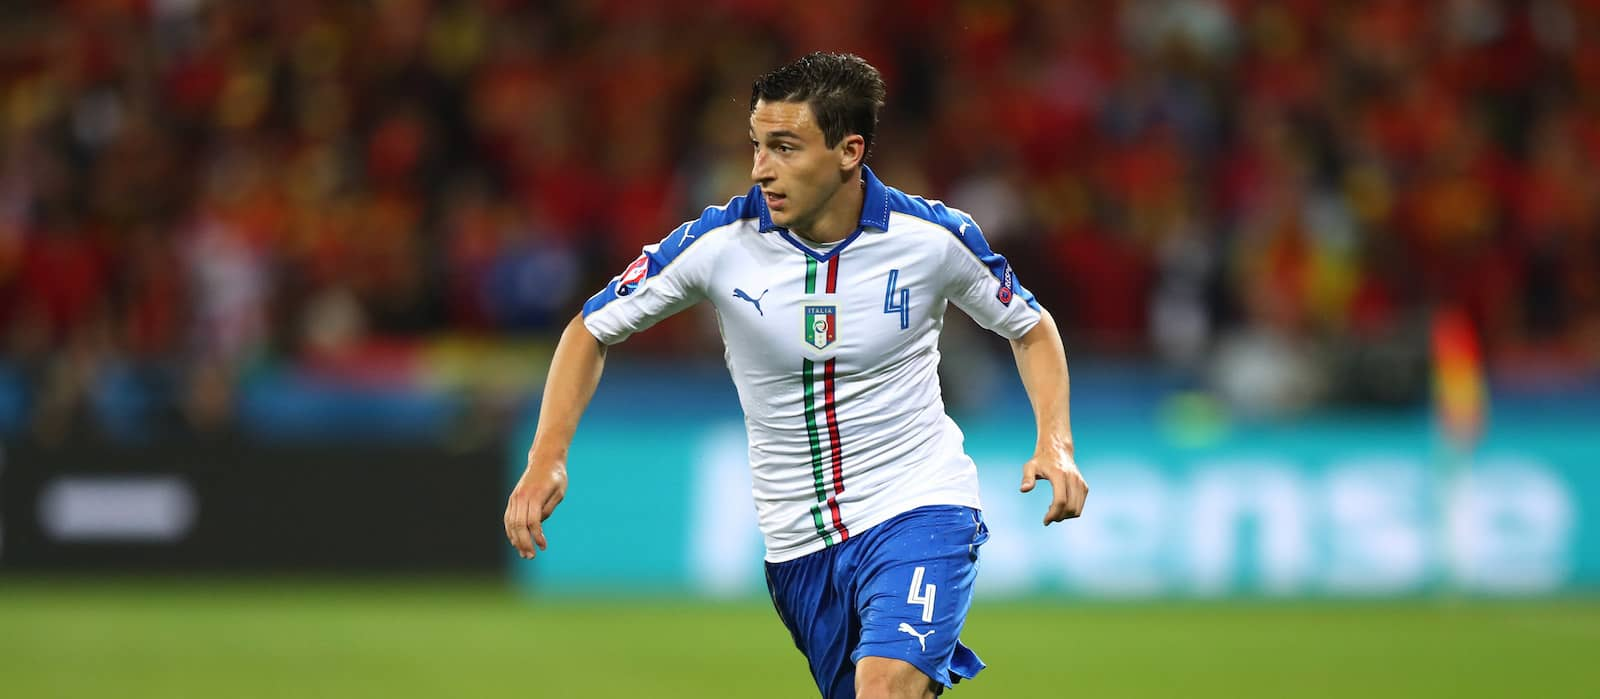 Napoli and Roma interested in signing Matteo Darmian this summer – report